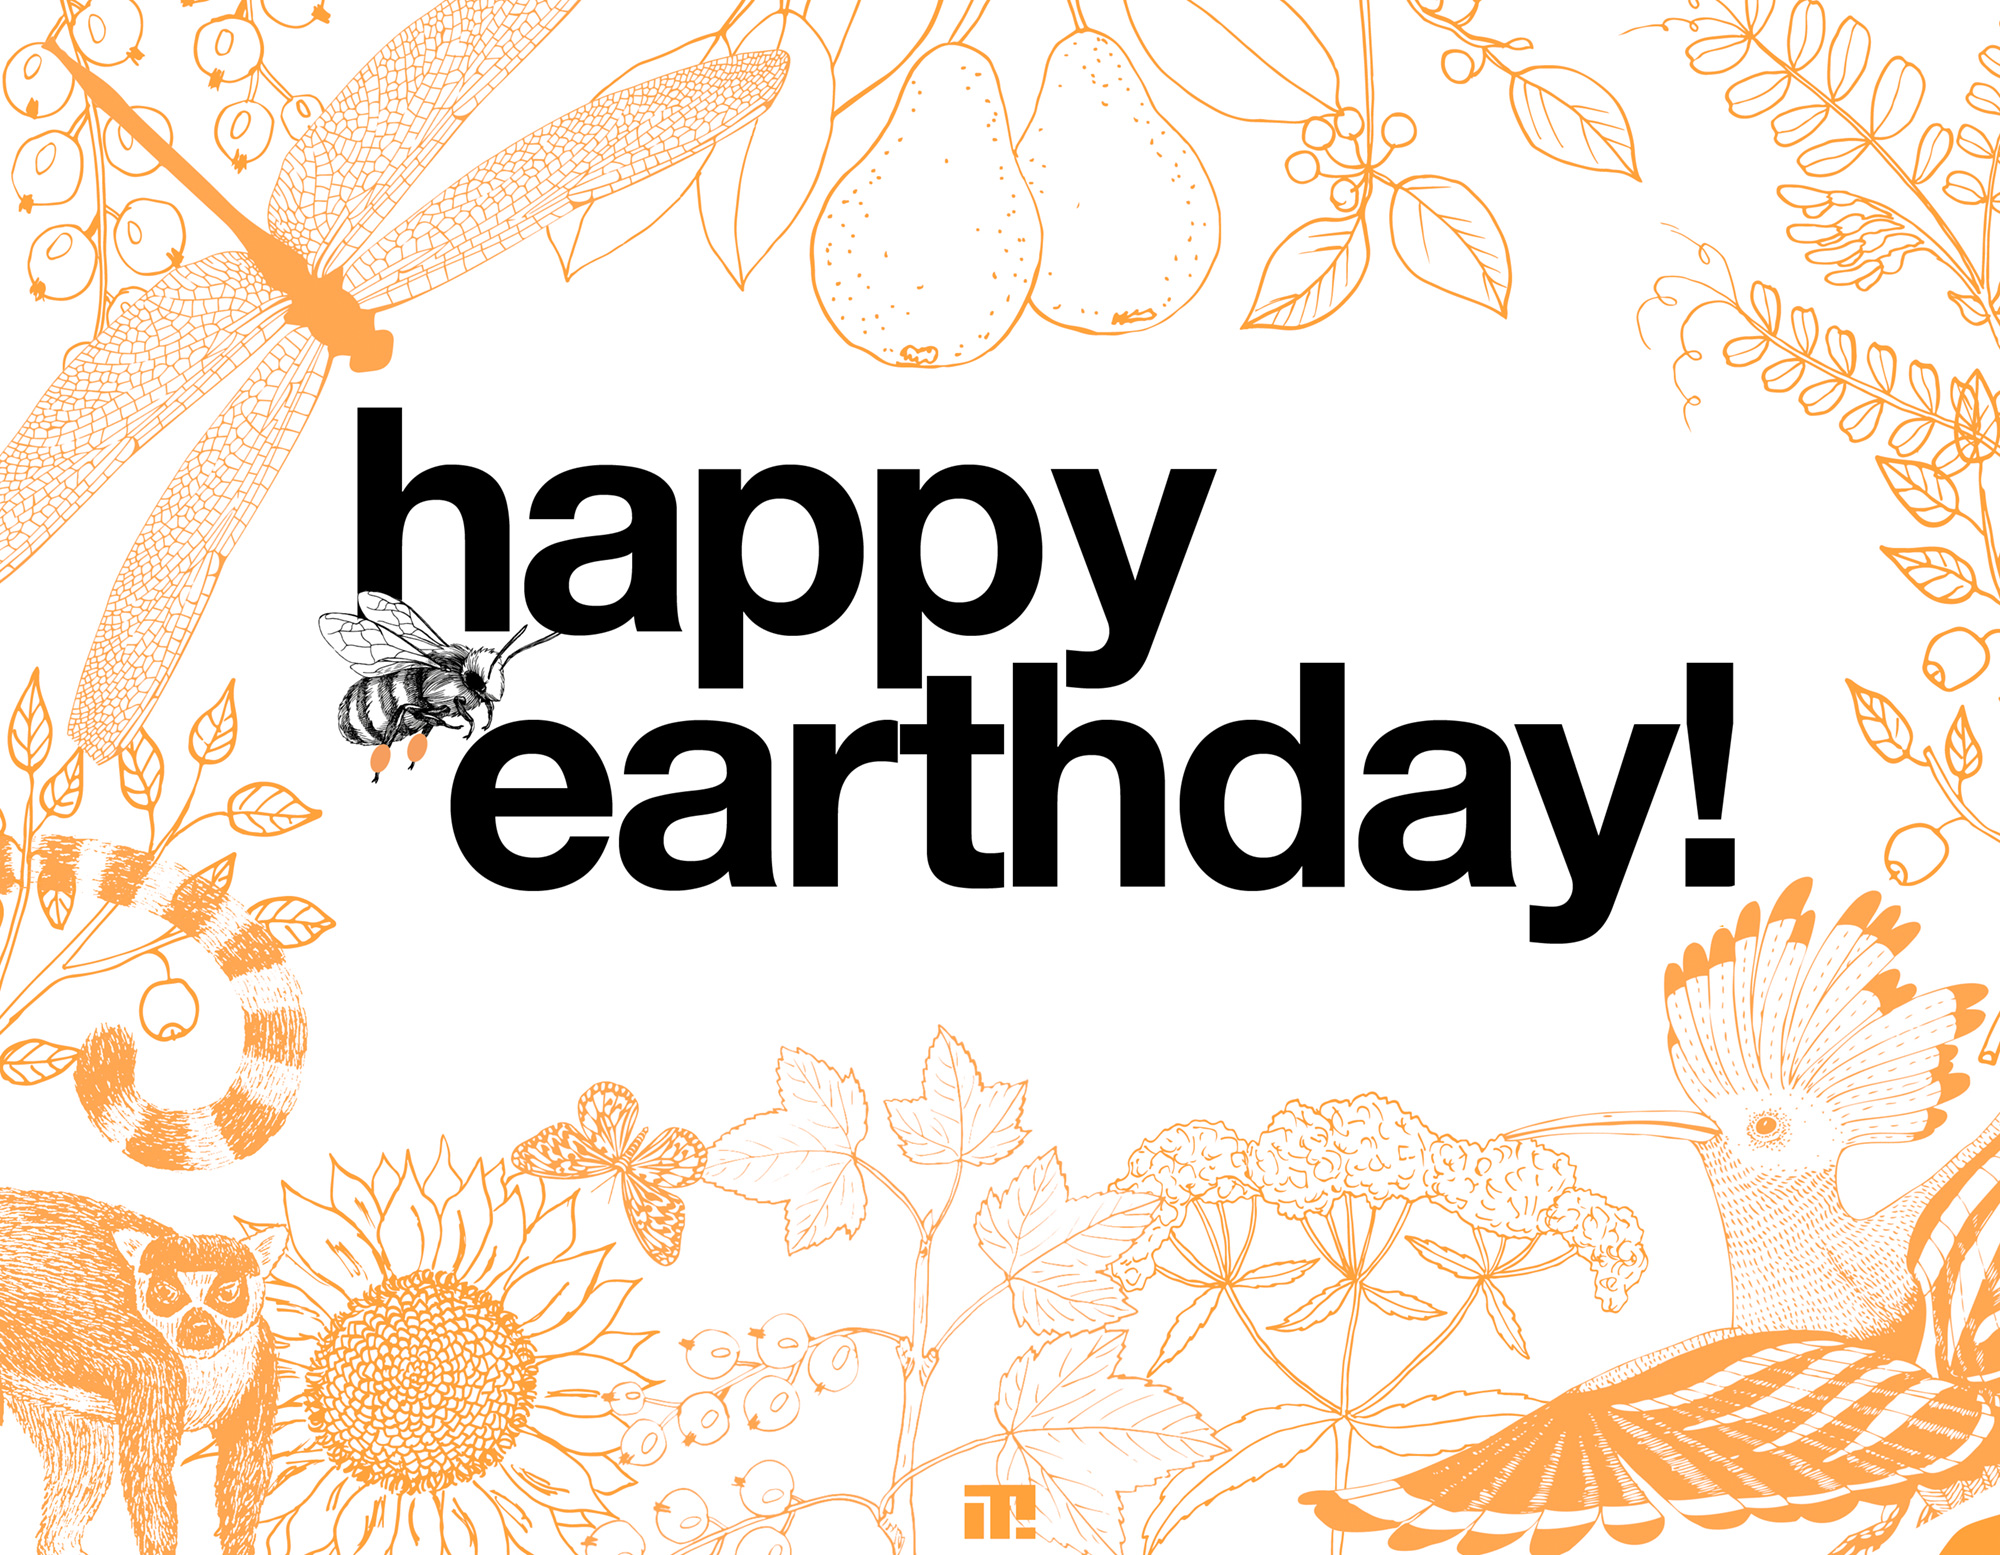 tellit_happy earthday